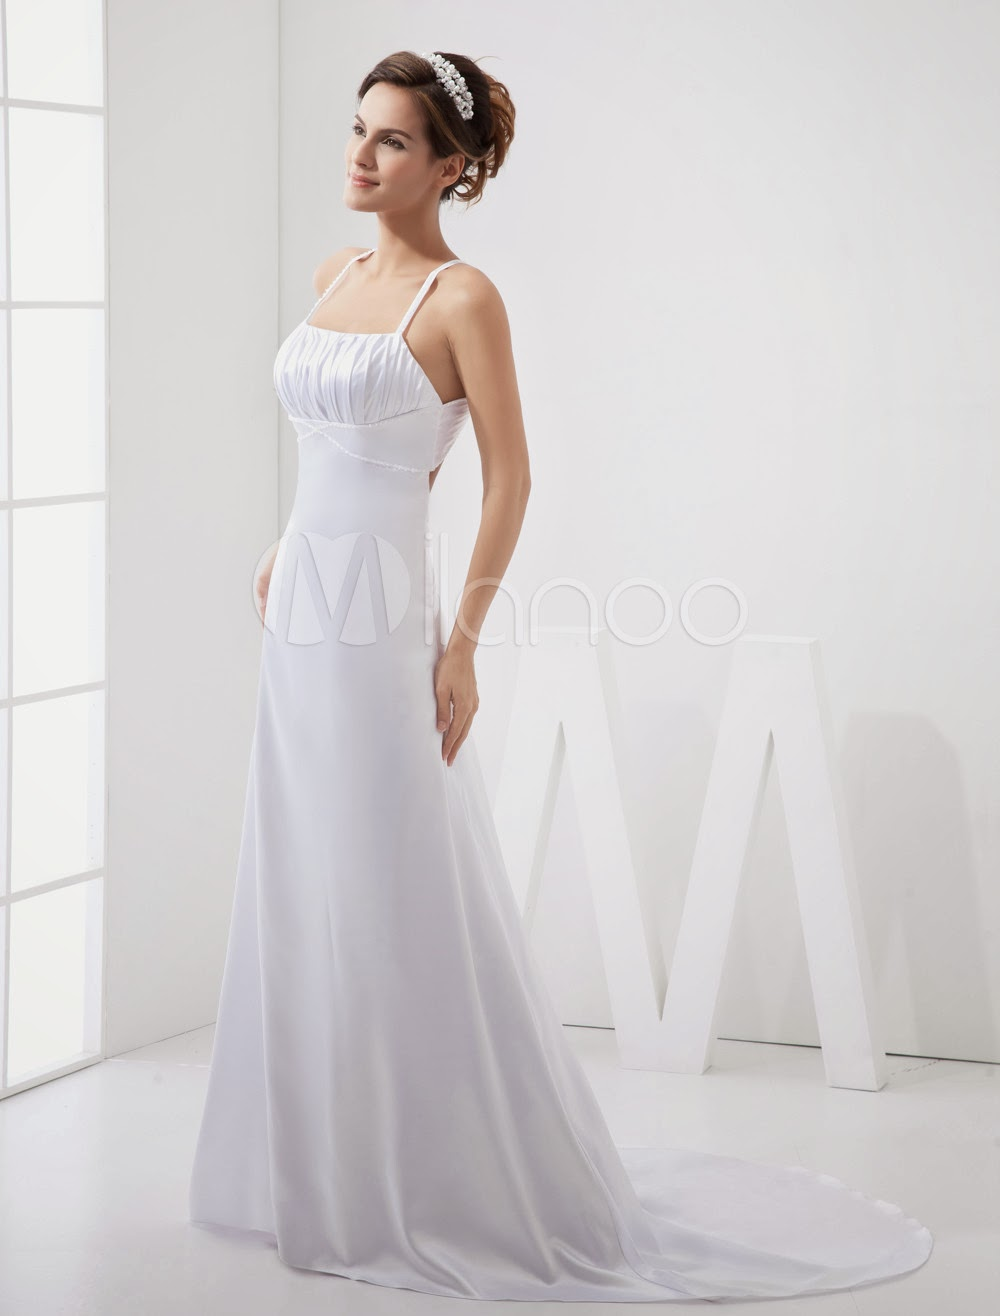 China Wholesale Dresses - A-line Spaghetti Empire Waist Beading Elastic Woven Satin Pongee Wedding Dress